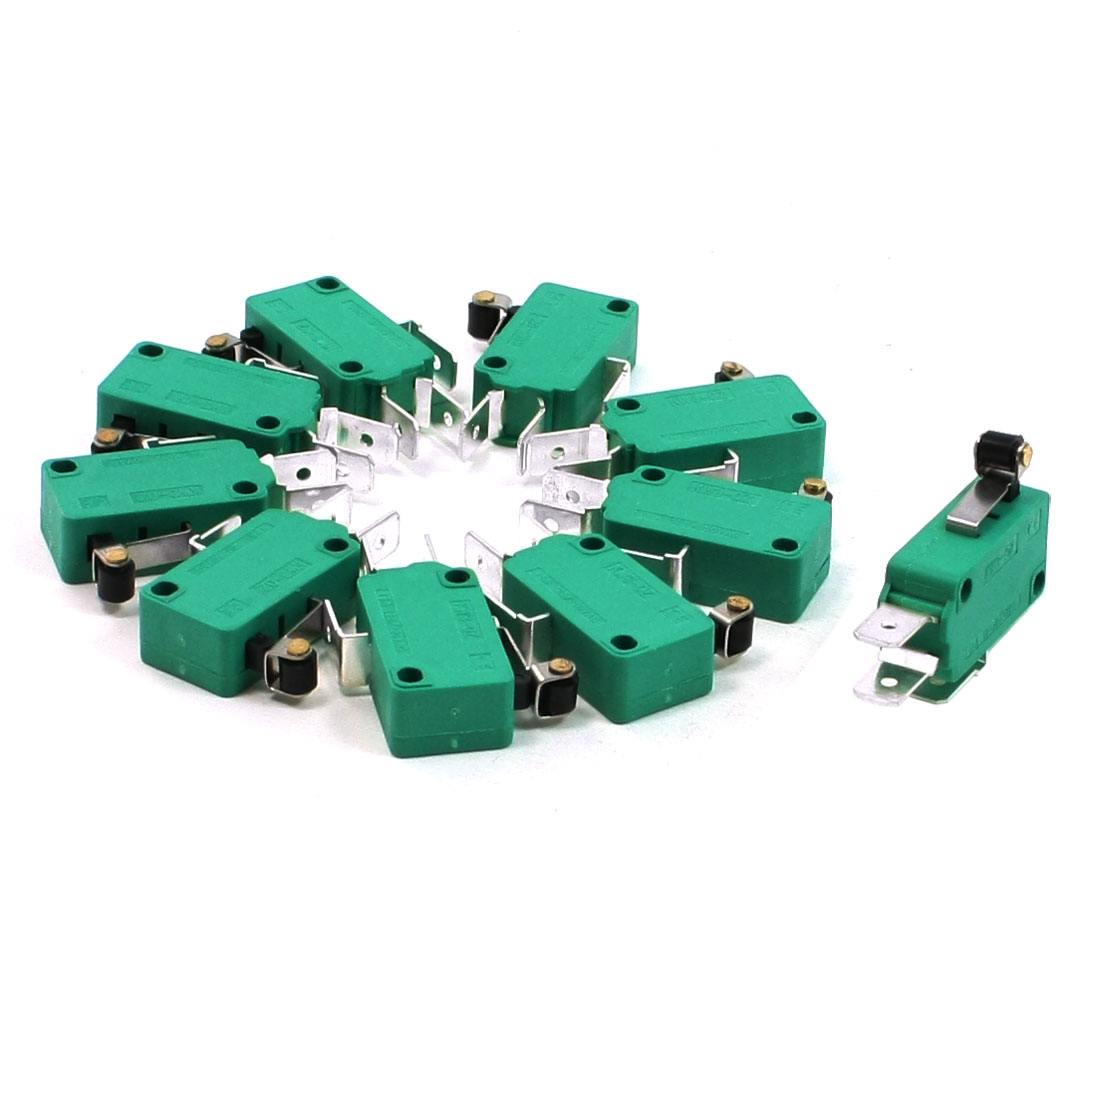 10 Pcs AC 250V 16A SPDT Short Hinge Roller Lever Miniature Micro Switch Green